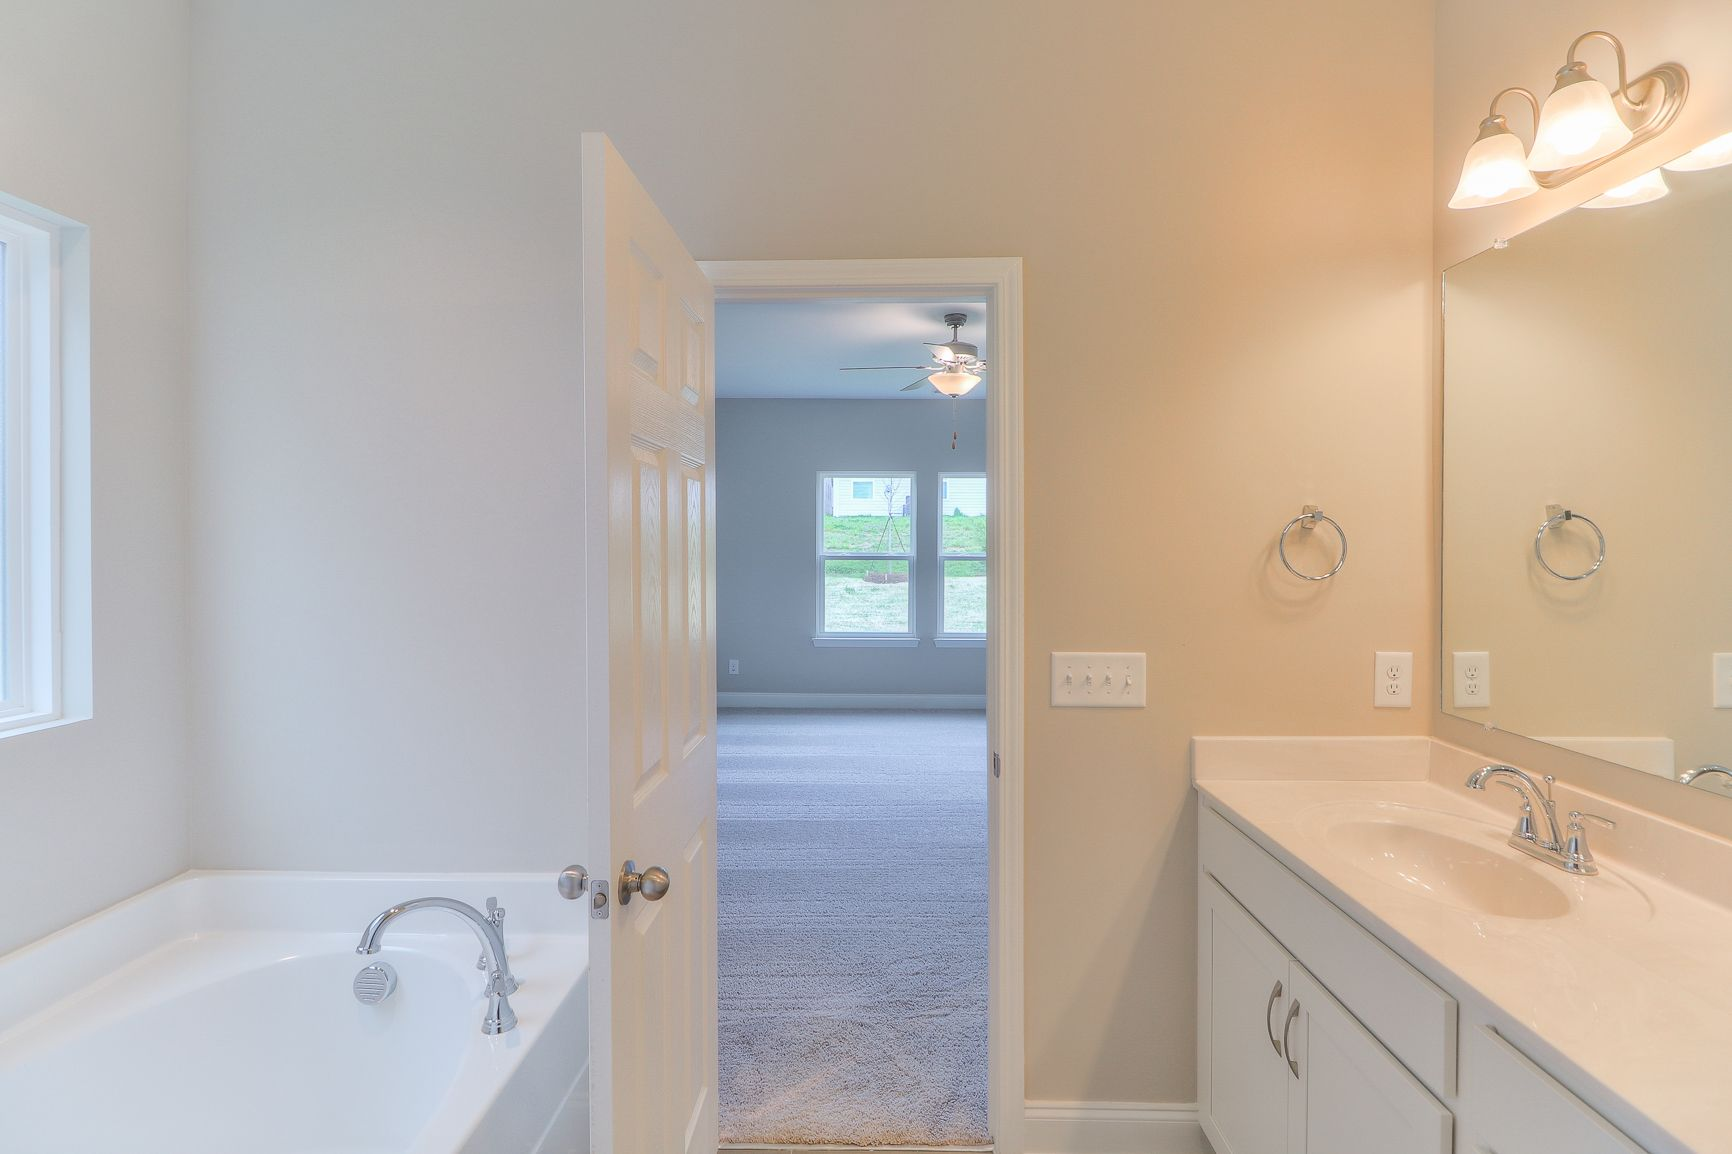 Bathroom featured in The Donelson By Goodall Homes in Chattanooga, TN